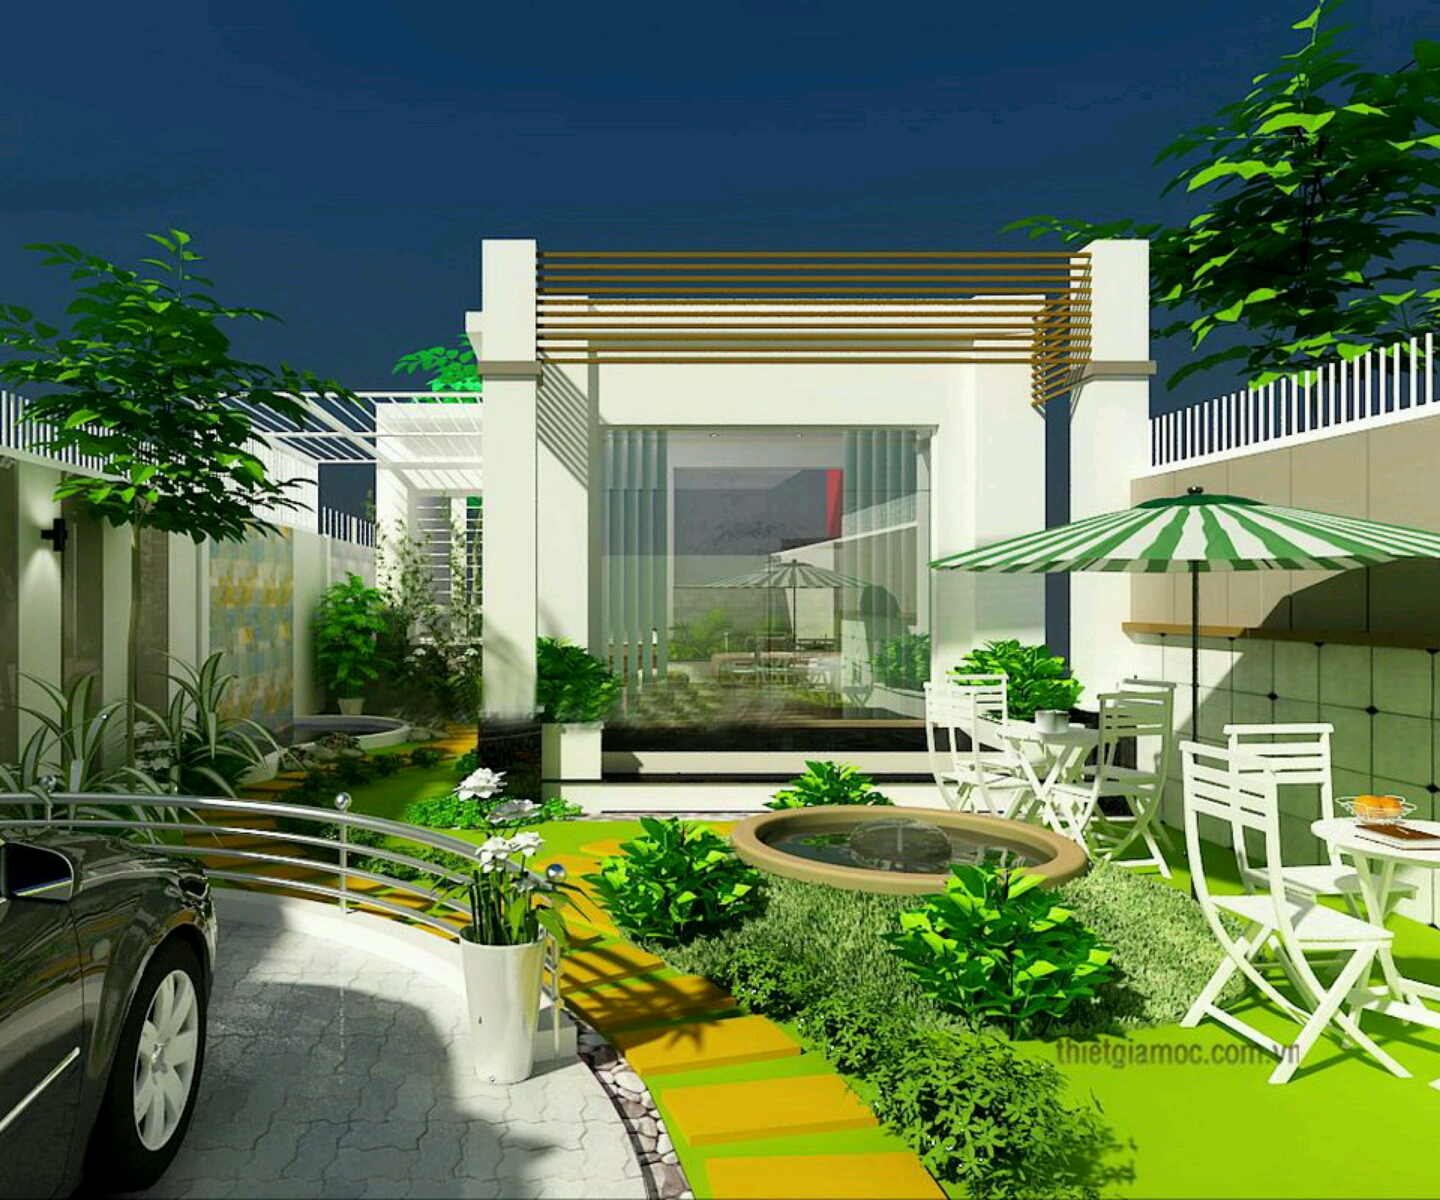 New home designs latest modern homes beautiful garden for Modern house garden